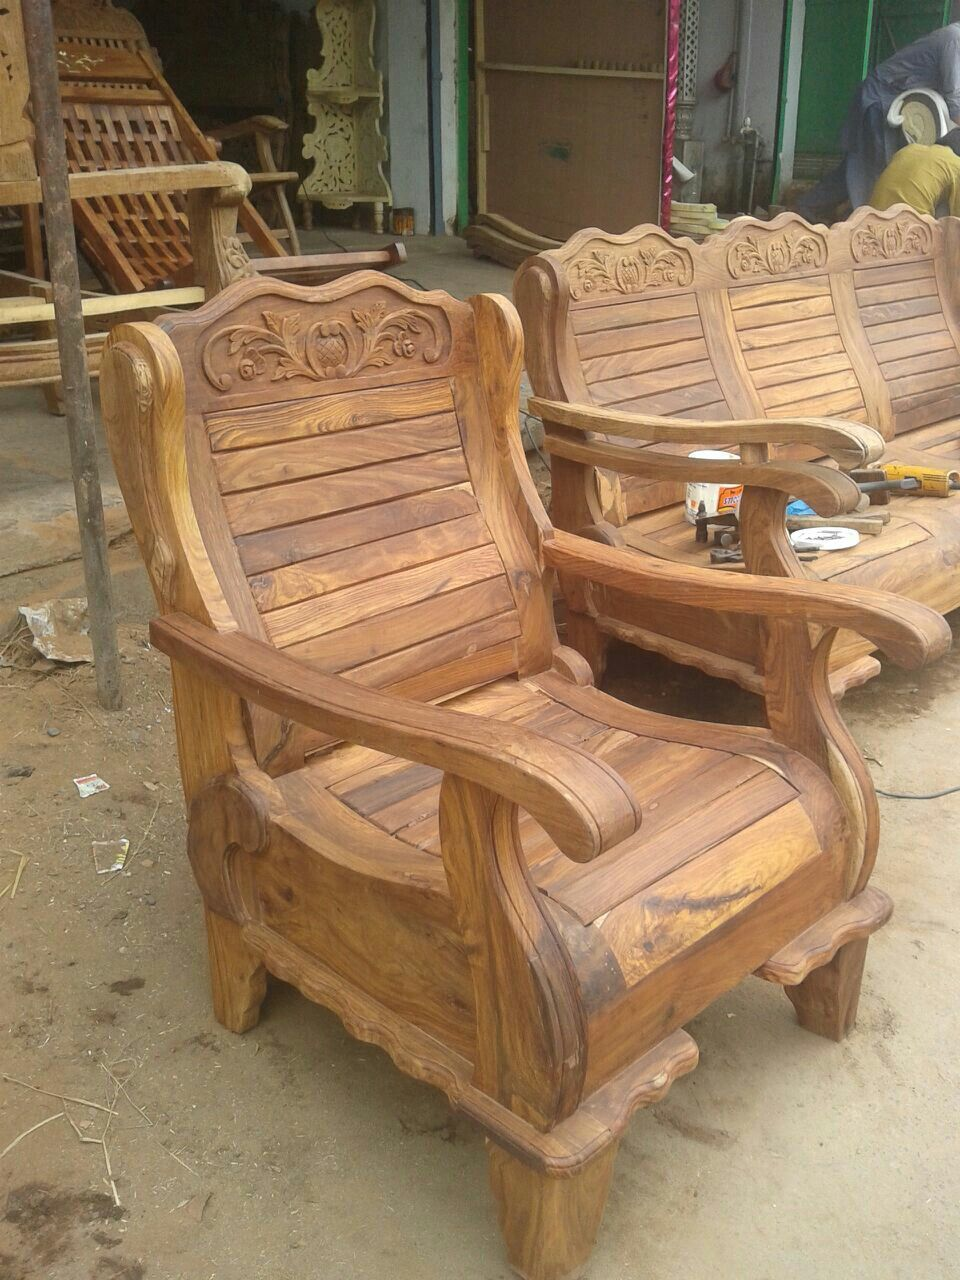 Pin By Woodsmithservices On Wood Carwing Furniture And Gift Artical 06374122215 Wooden Sofa Designs Furniture Design Wooden Wooden Sofa Set